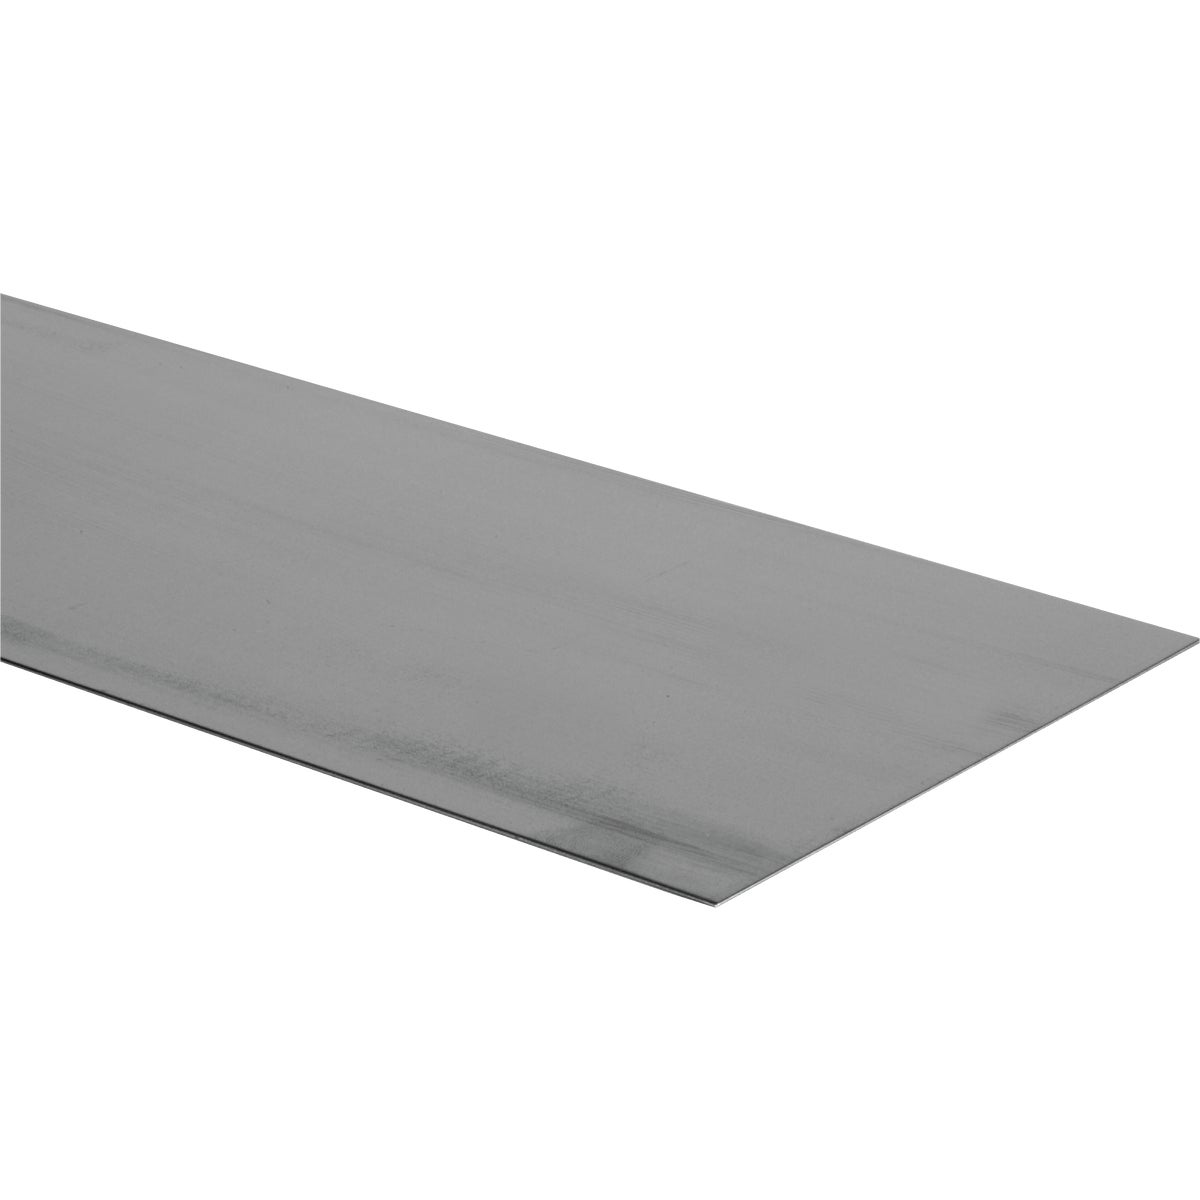 6X24 22GA STEEL SHEET - N341479 by National Mfg Co